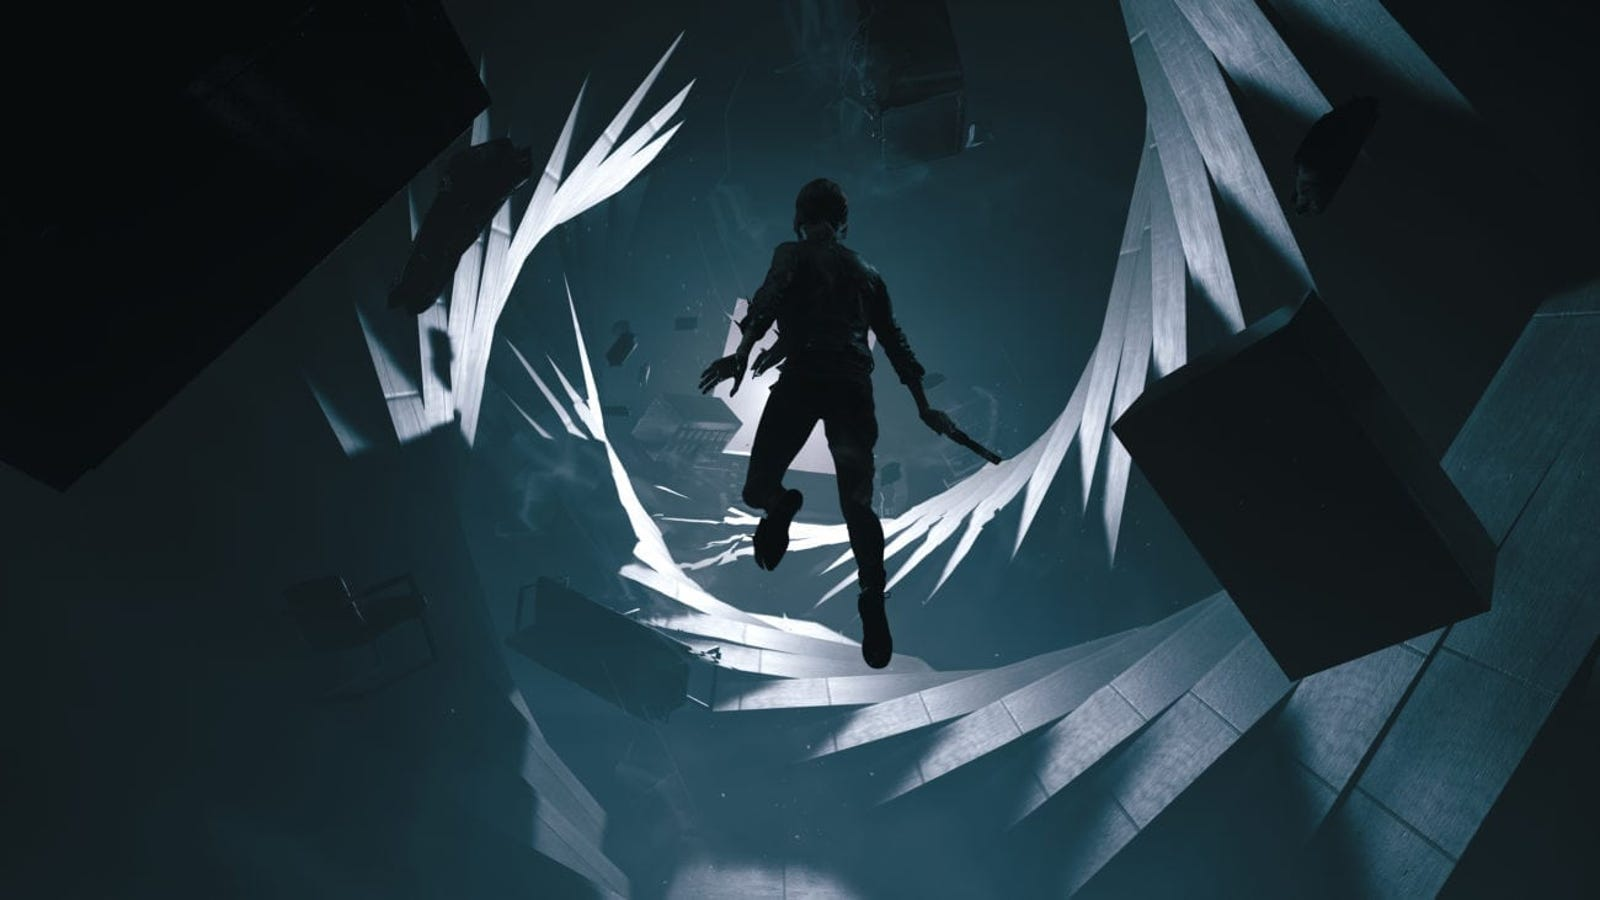 Control is a fascinating work of video game storytelling that levitates above its limitations